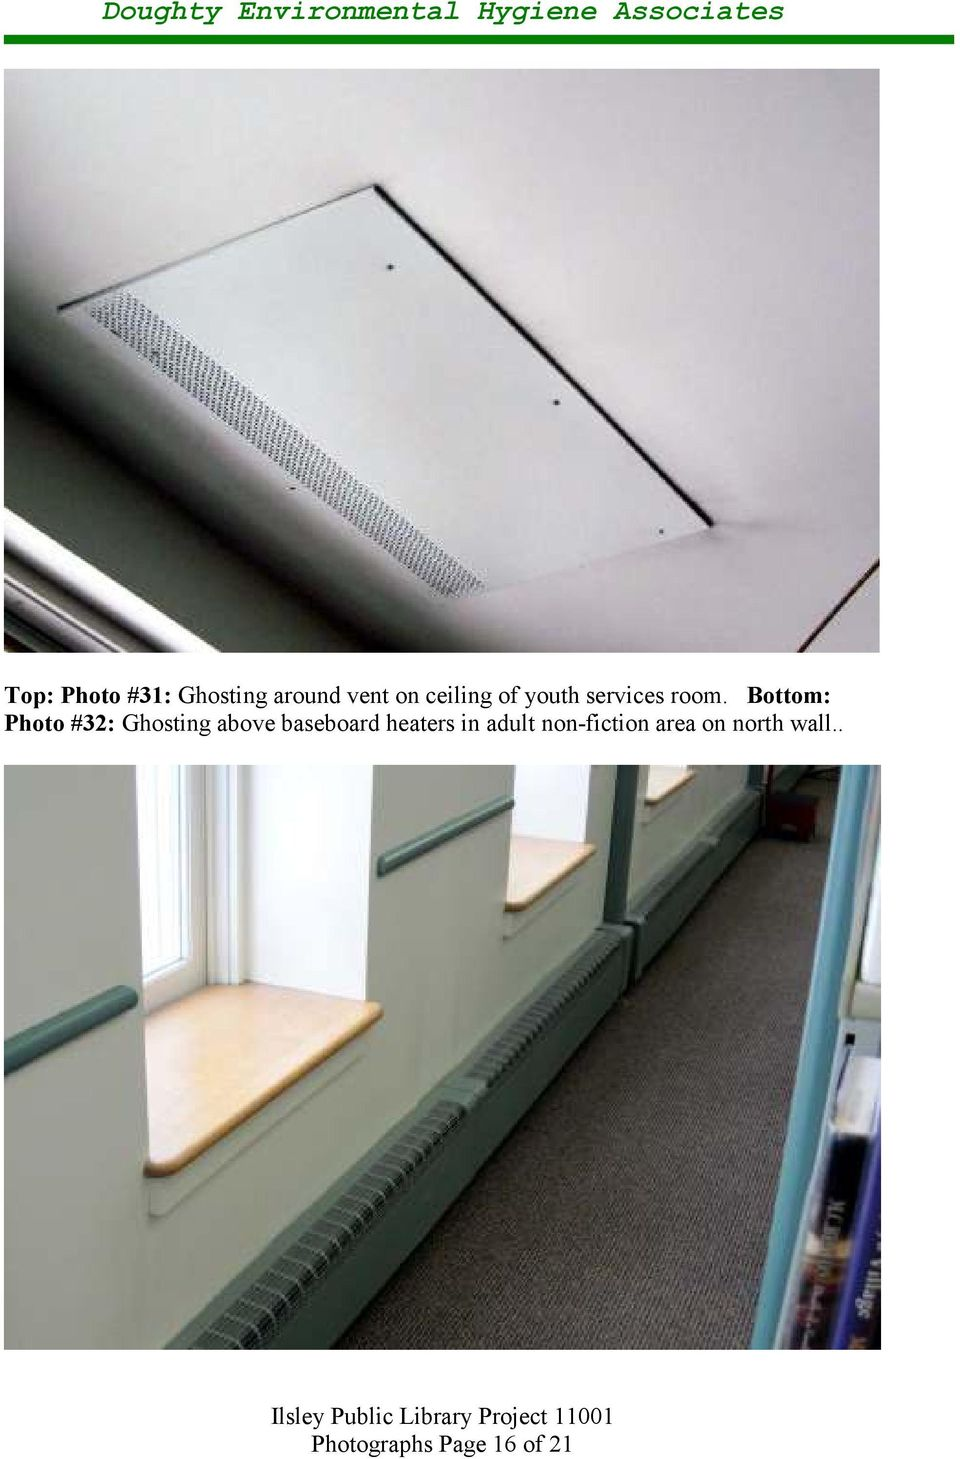 Bottom: Photo #32: Ghosting above baseboard